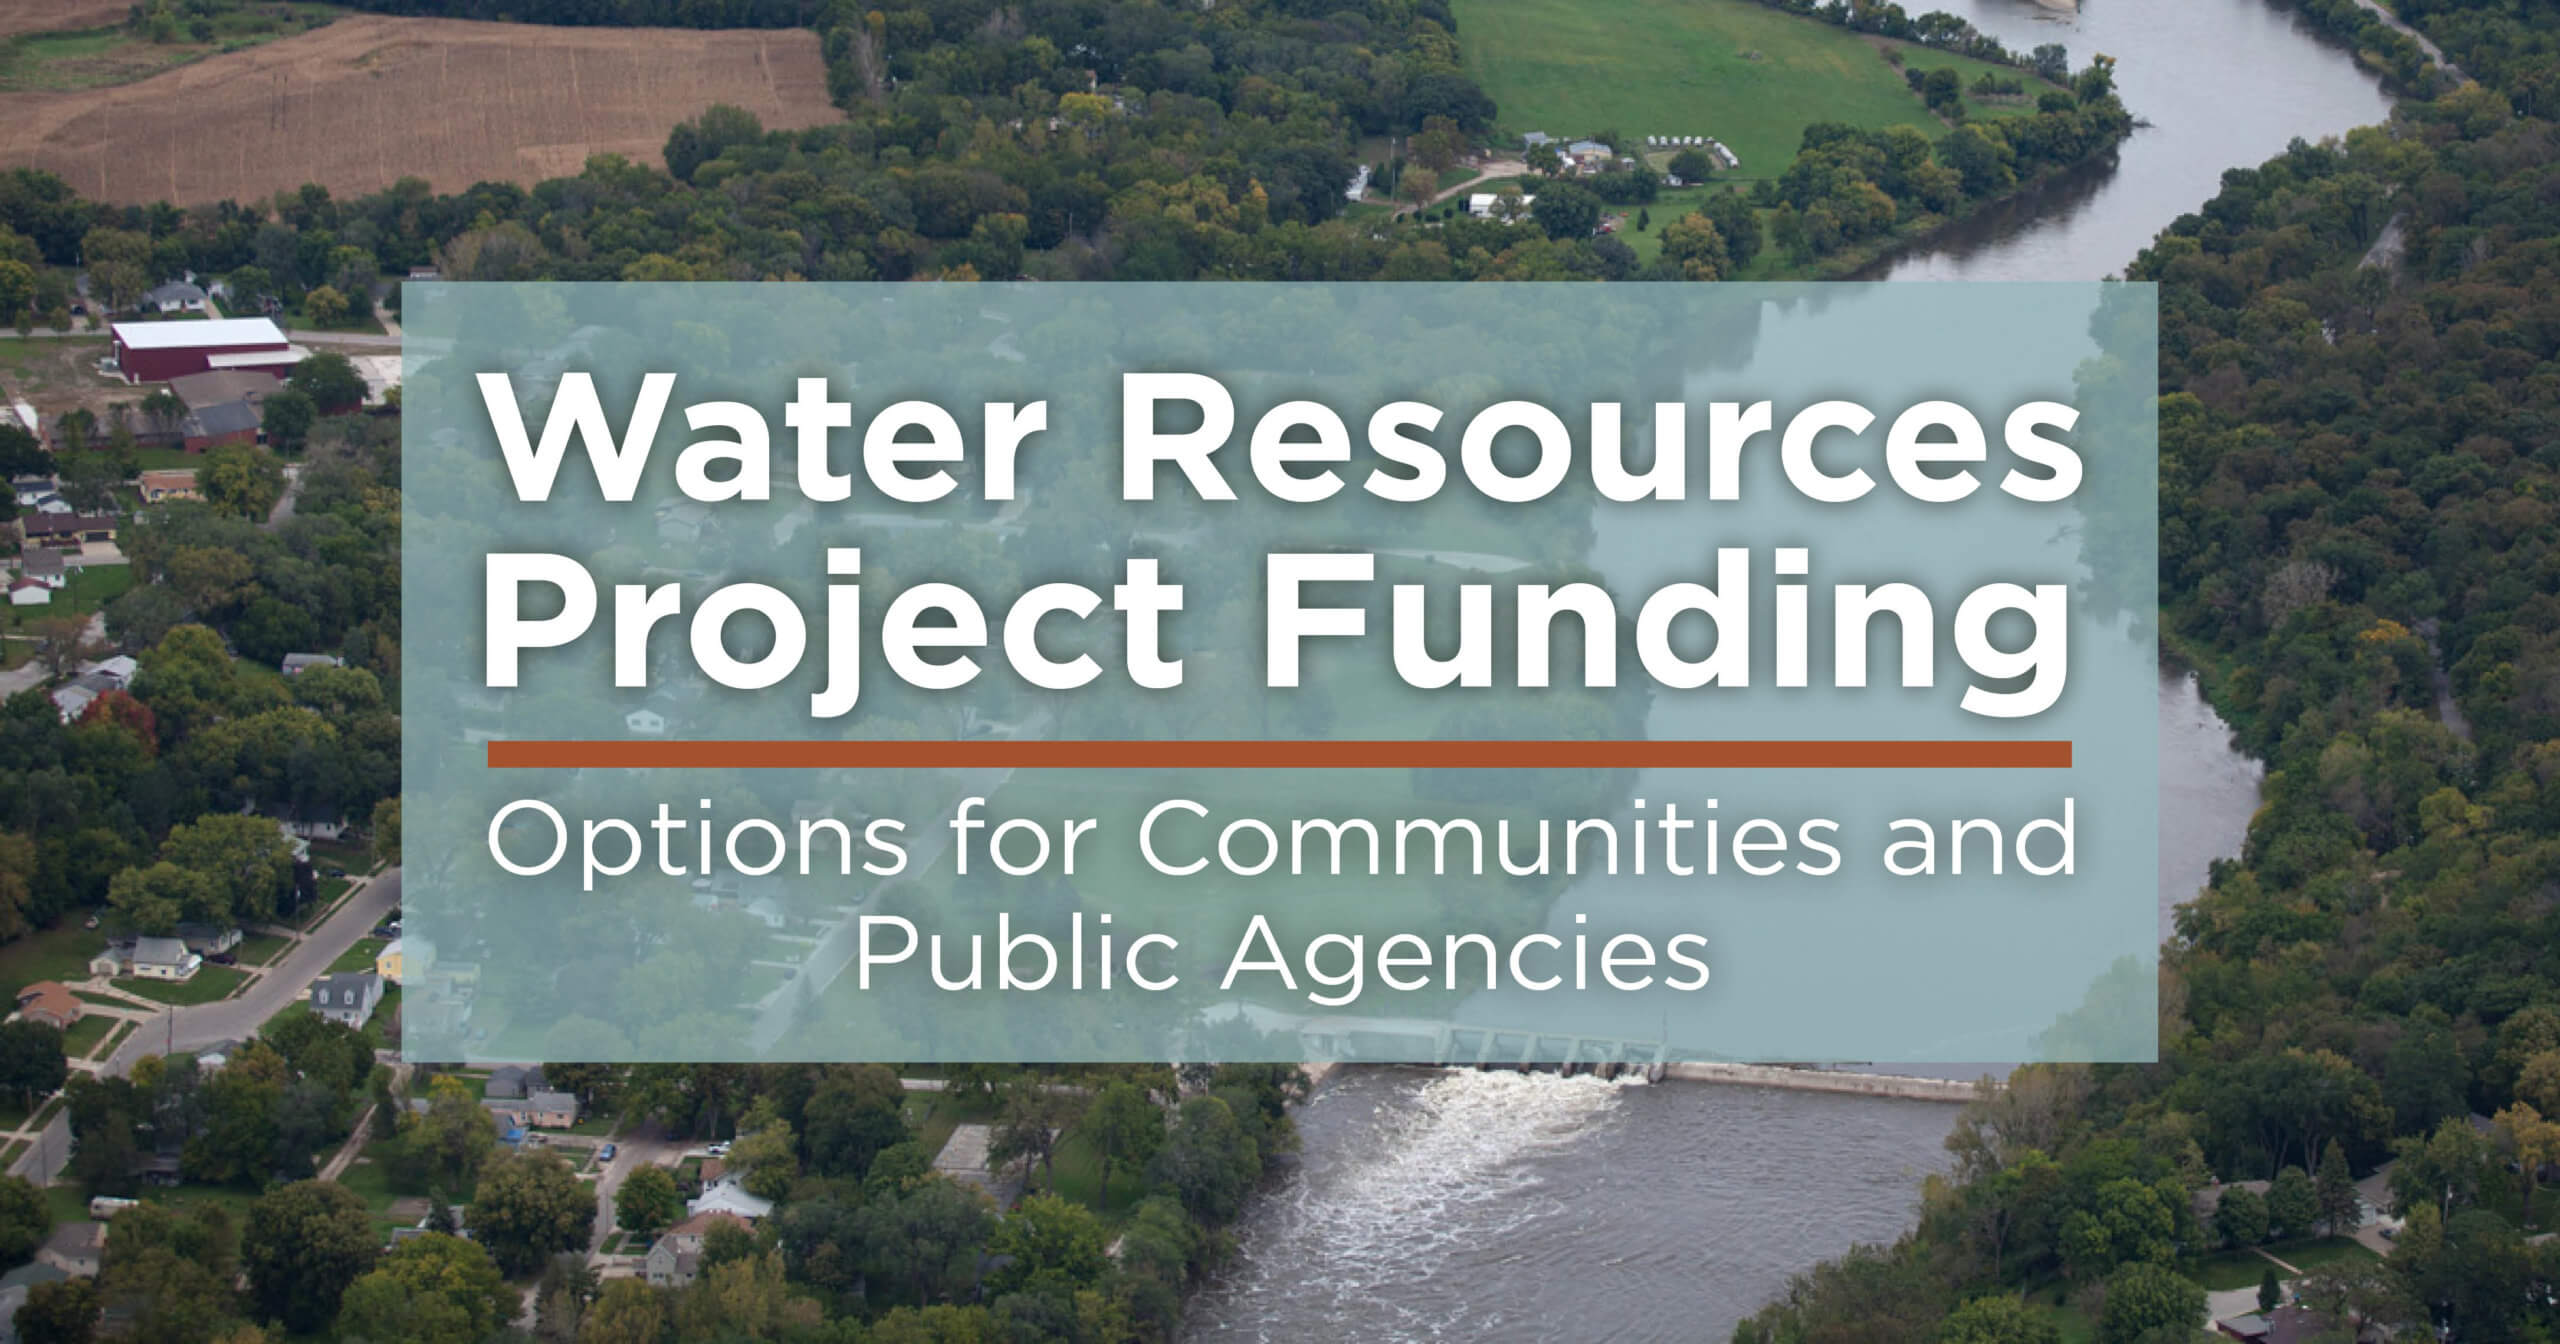 water resources project funding options for communities and public agencies